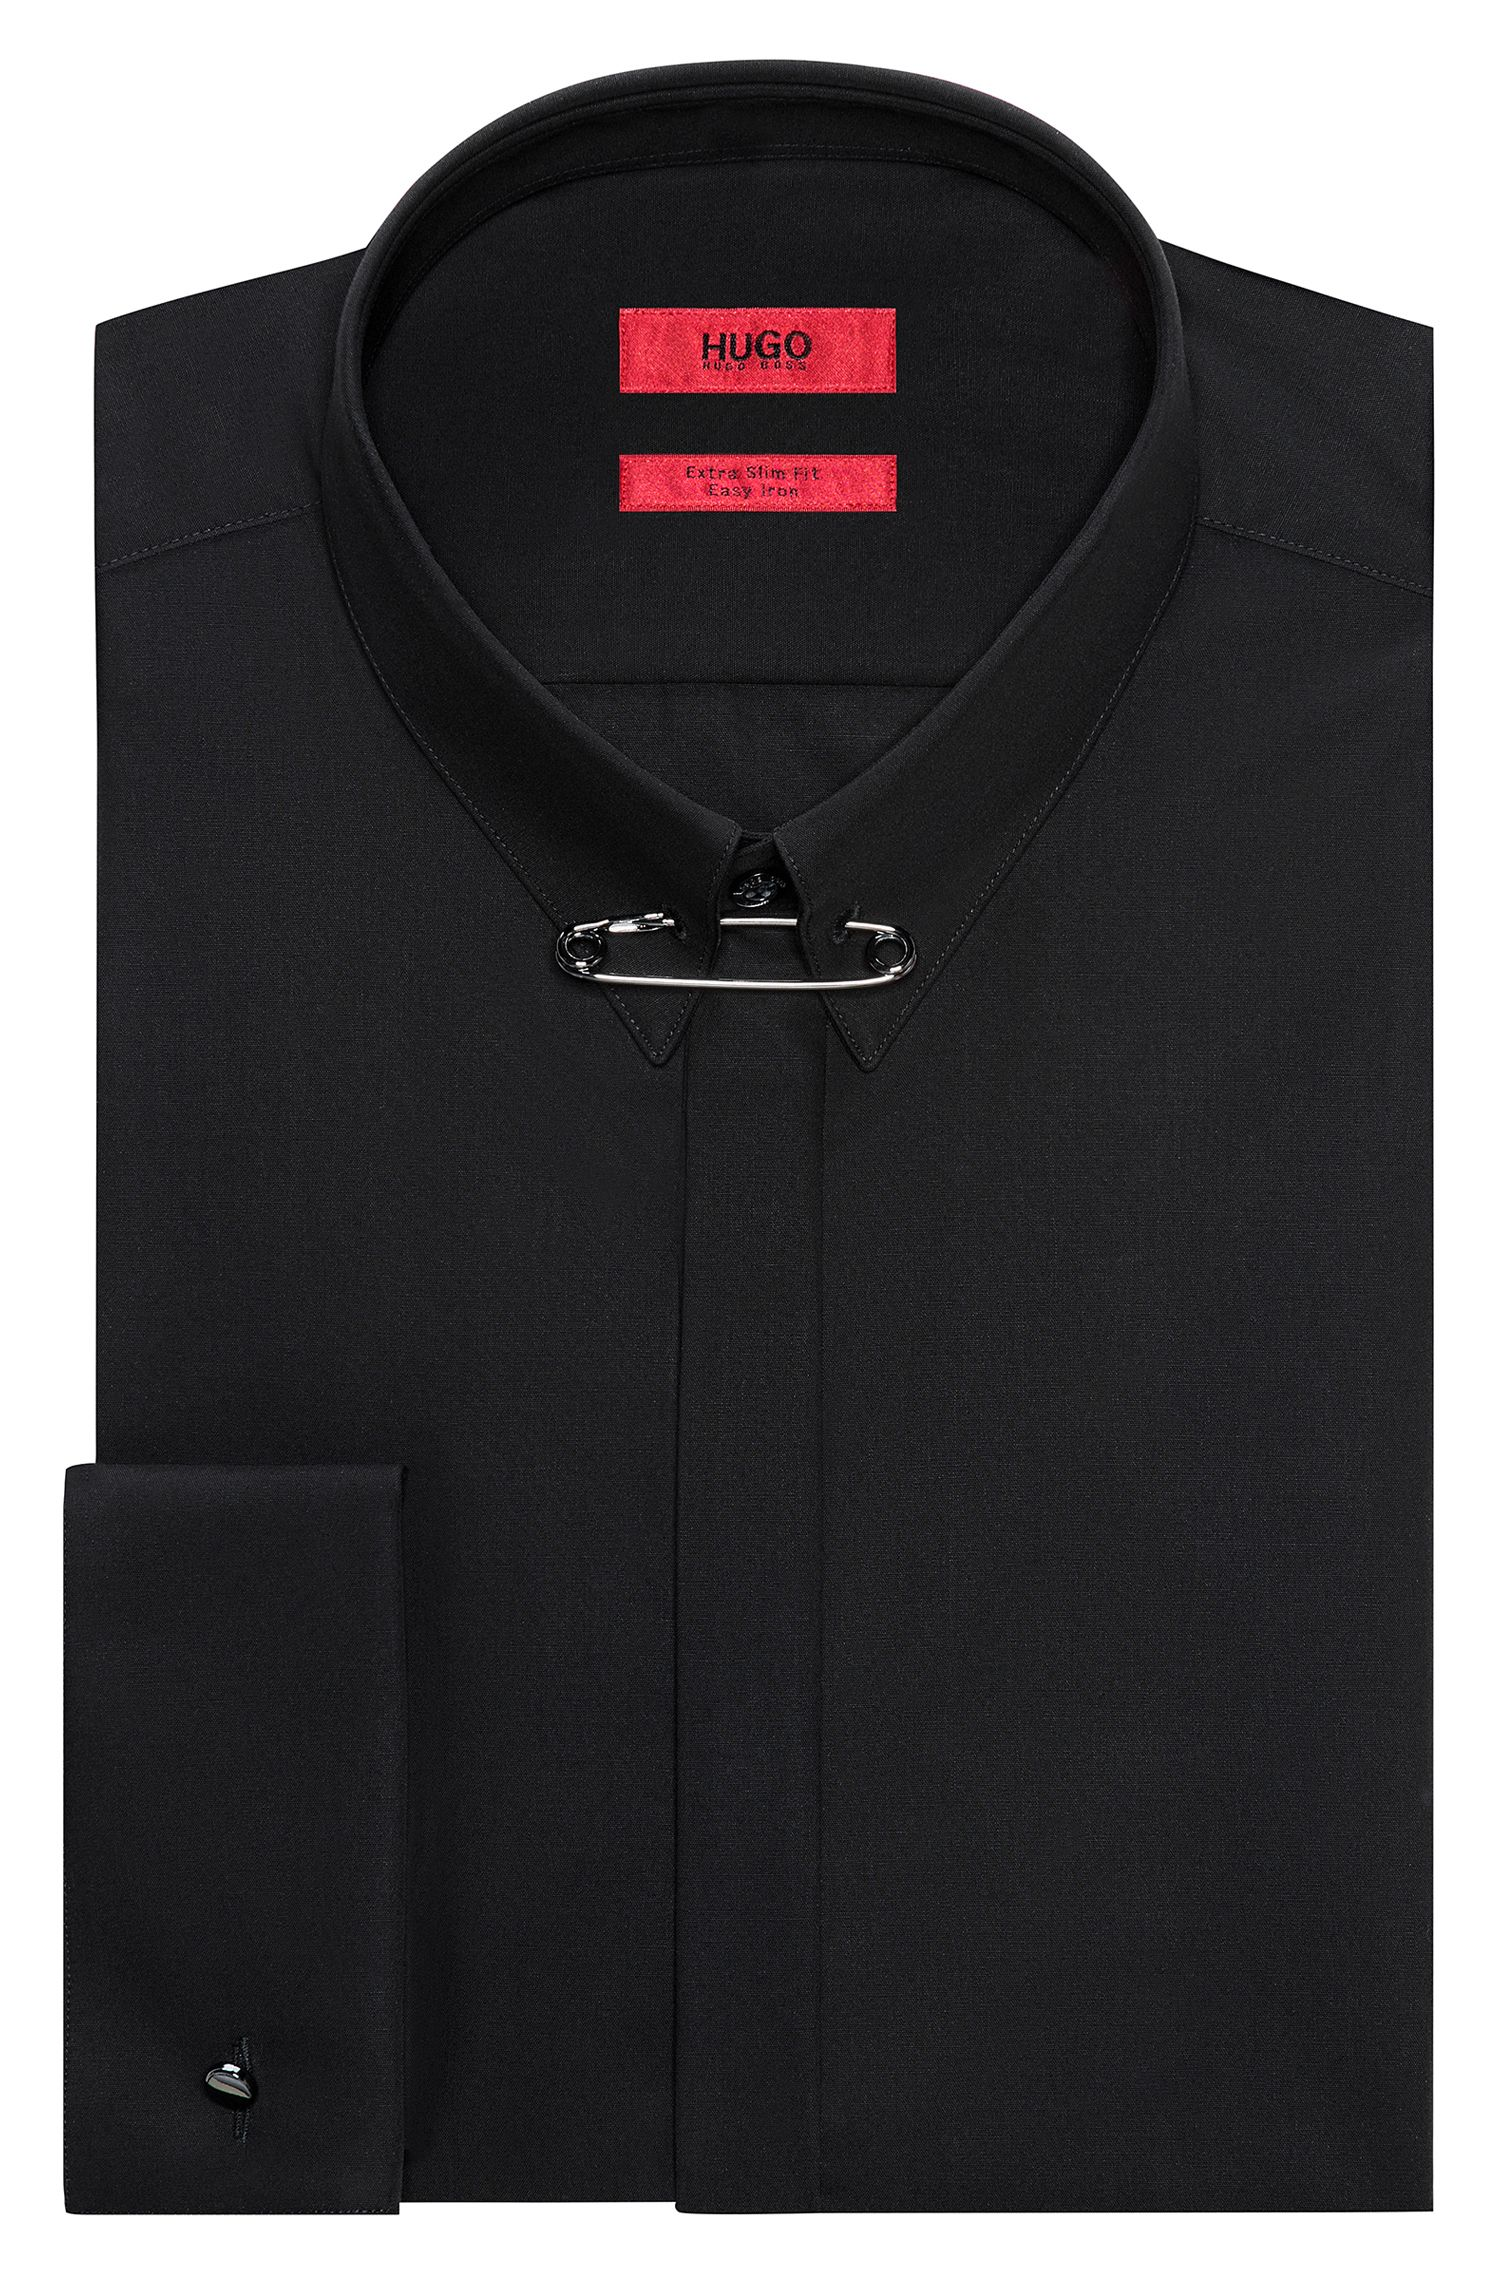 Extra-slim-fit cotton shirt with safety-pin collar detail